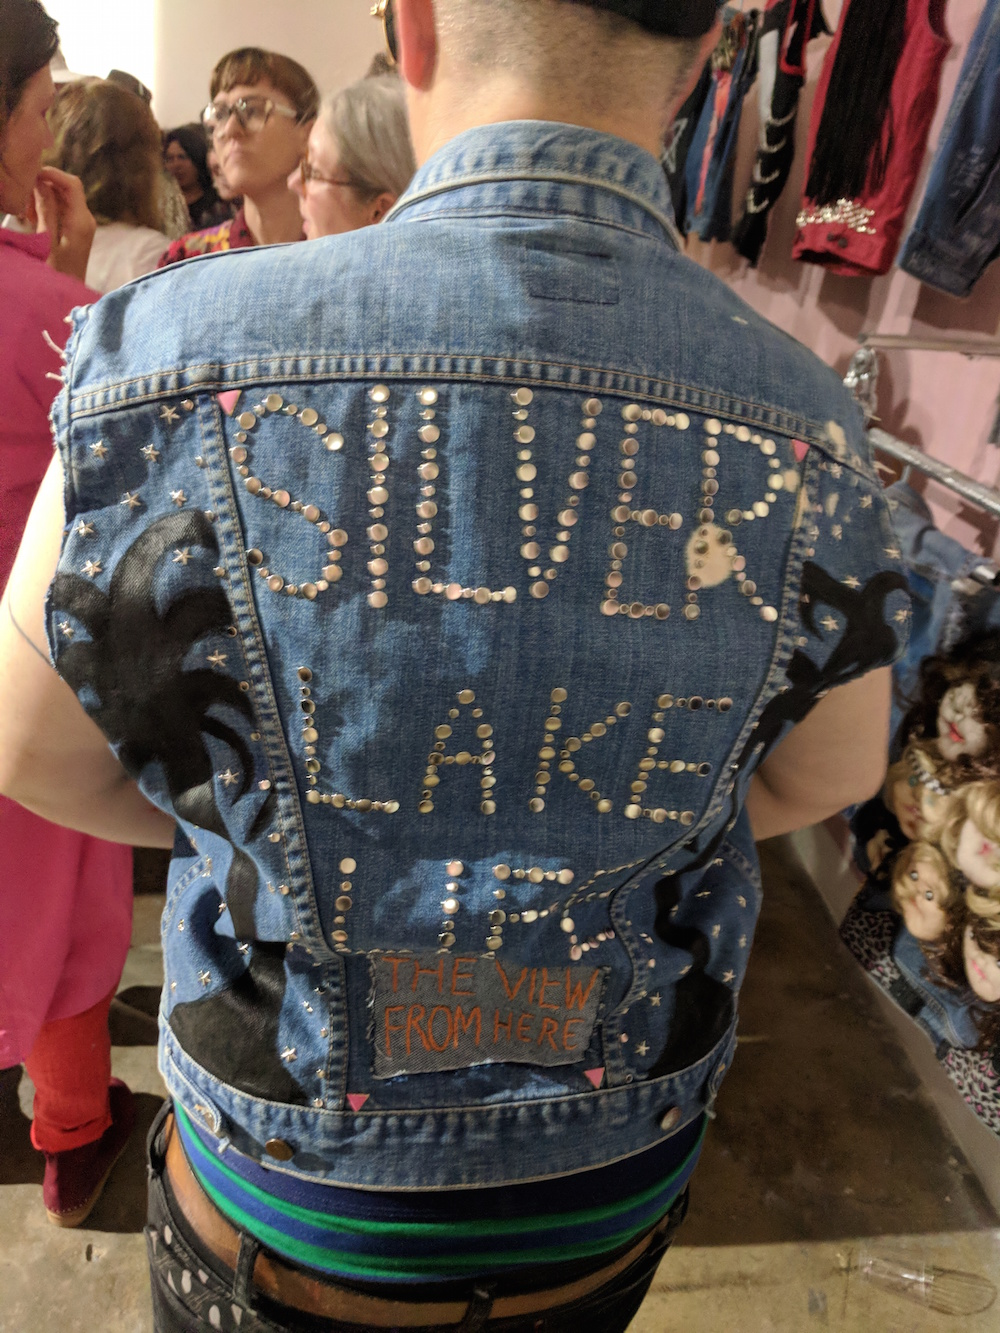 Samara Halperin wearing a vest honoring Tom Joslin and Mark Massi's documentary Silverlake Life: The View From Here (1993).